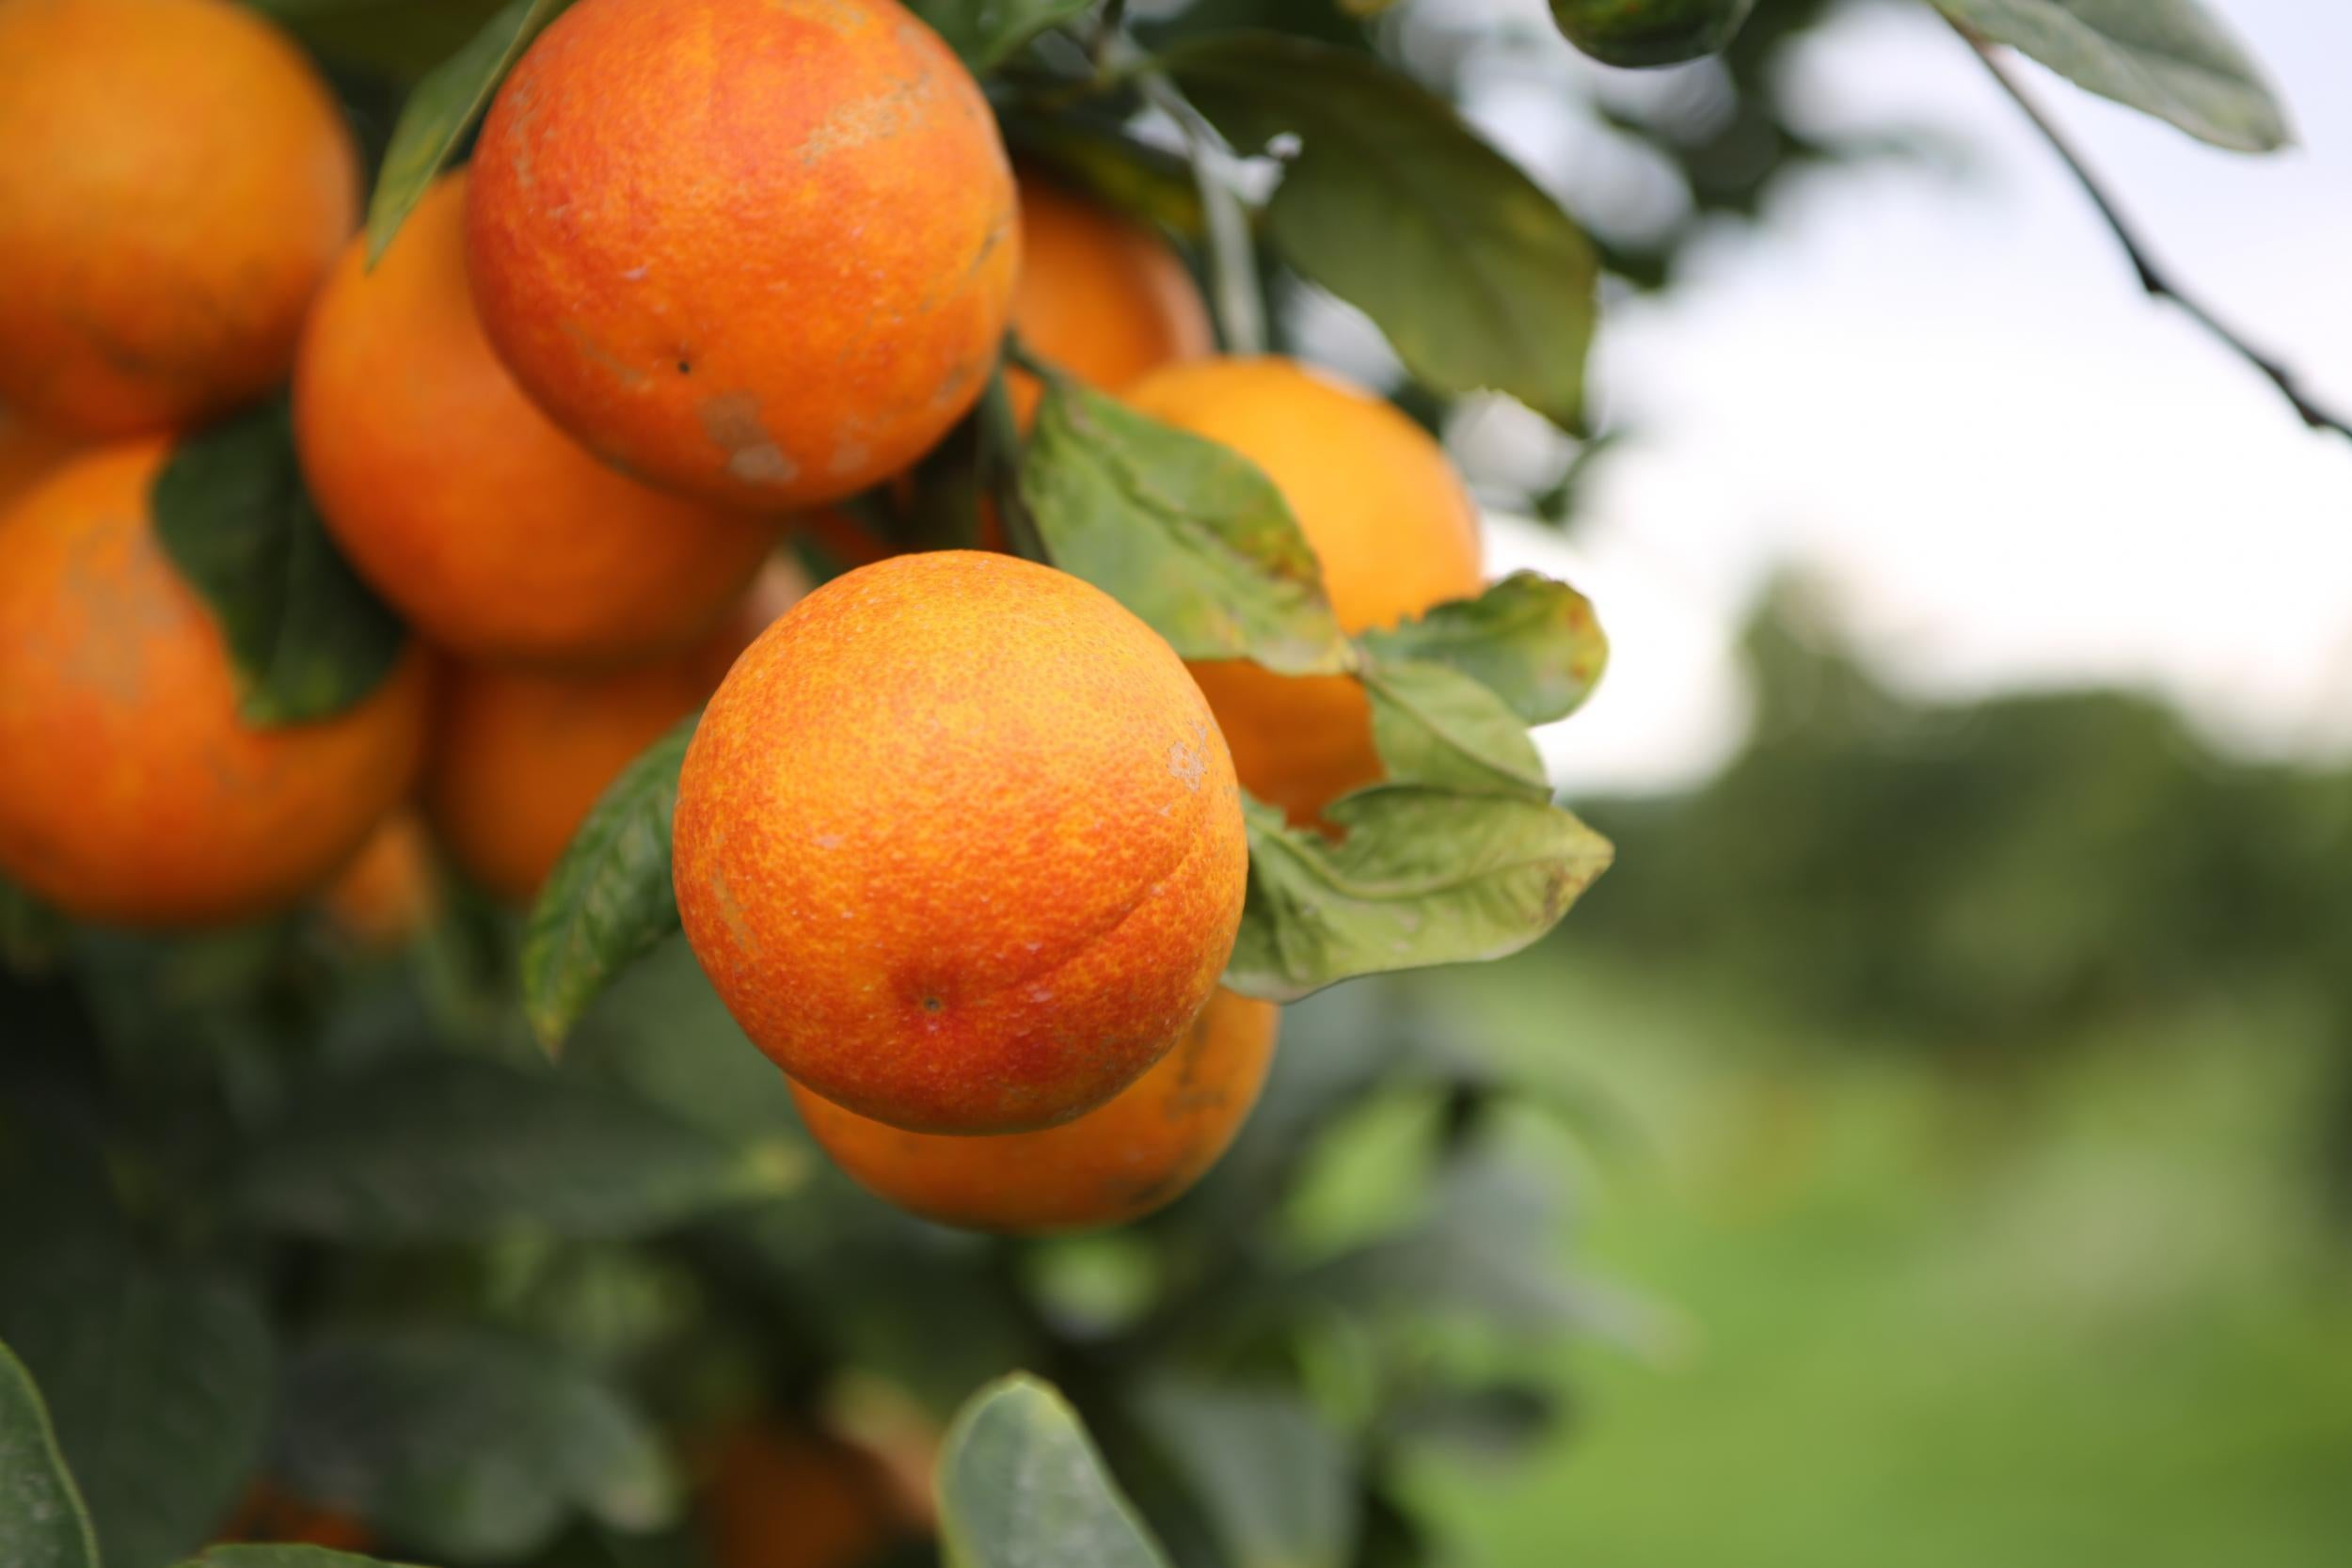 How To Make The Most Of The Short And Sweet Blood Orange Season The Independent The Independent